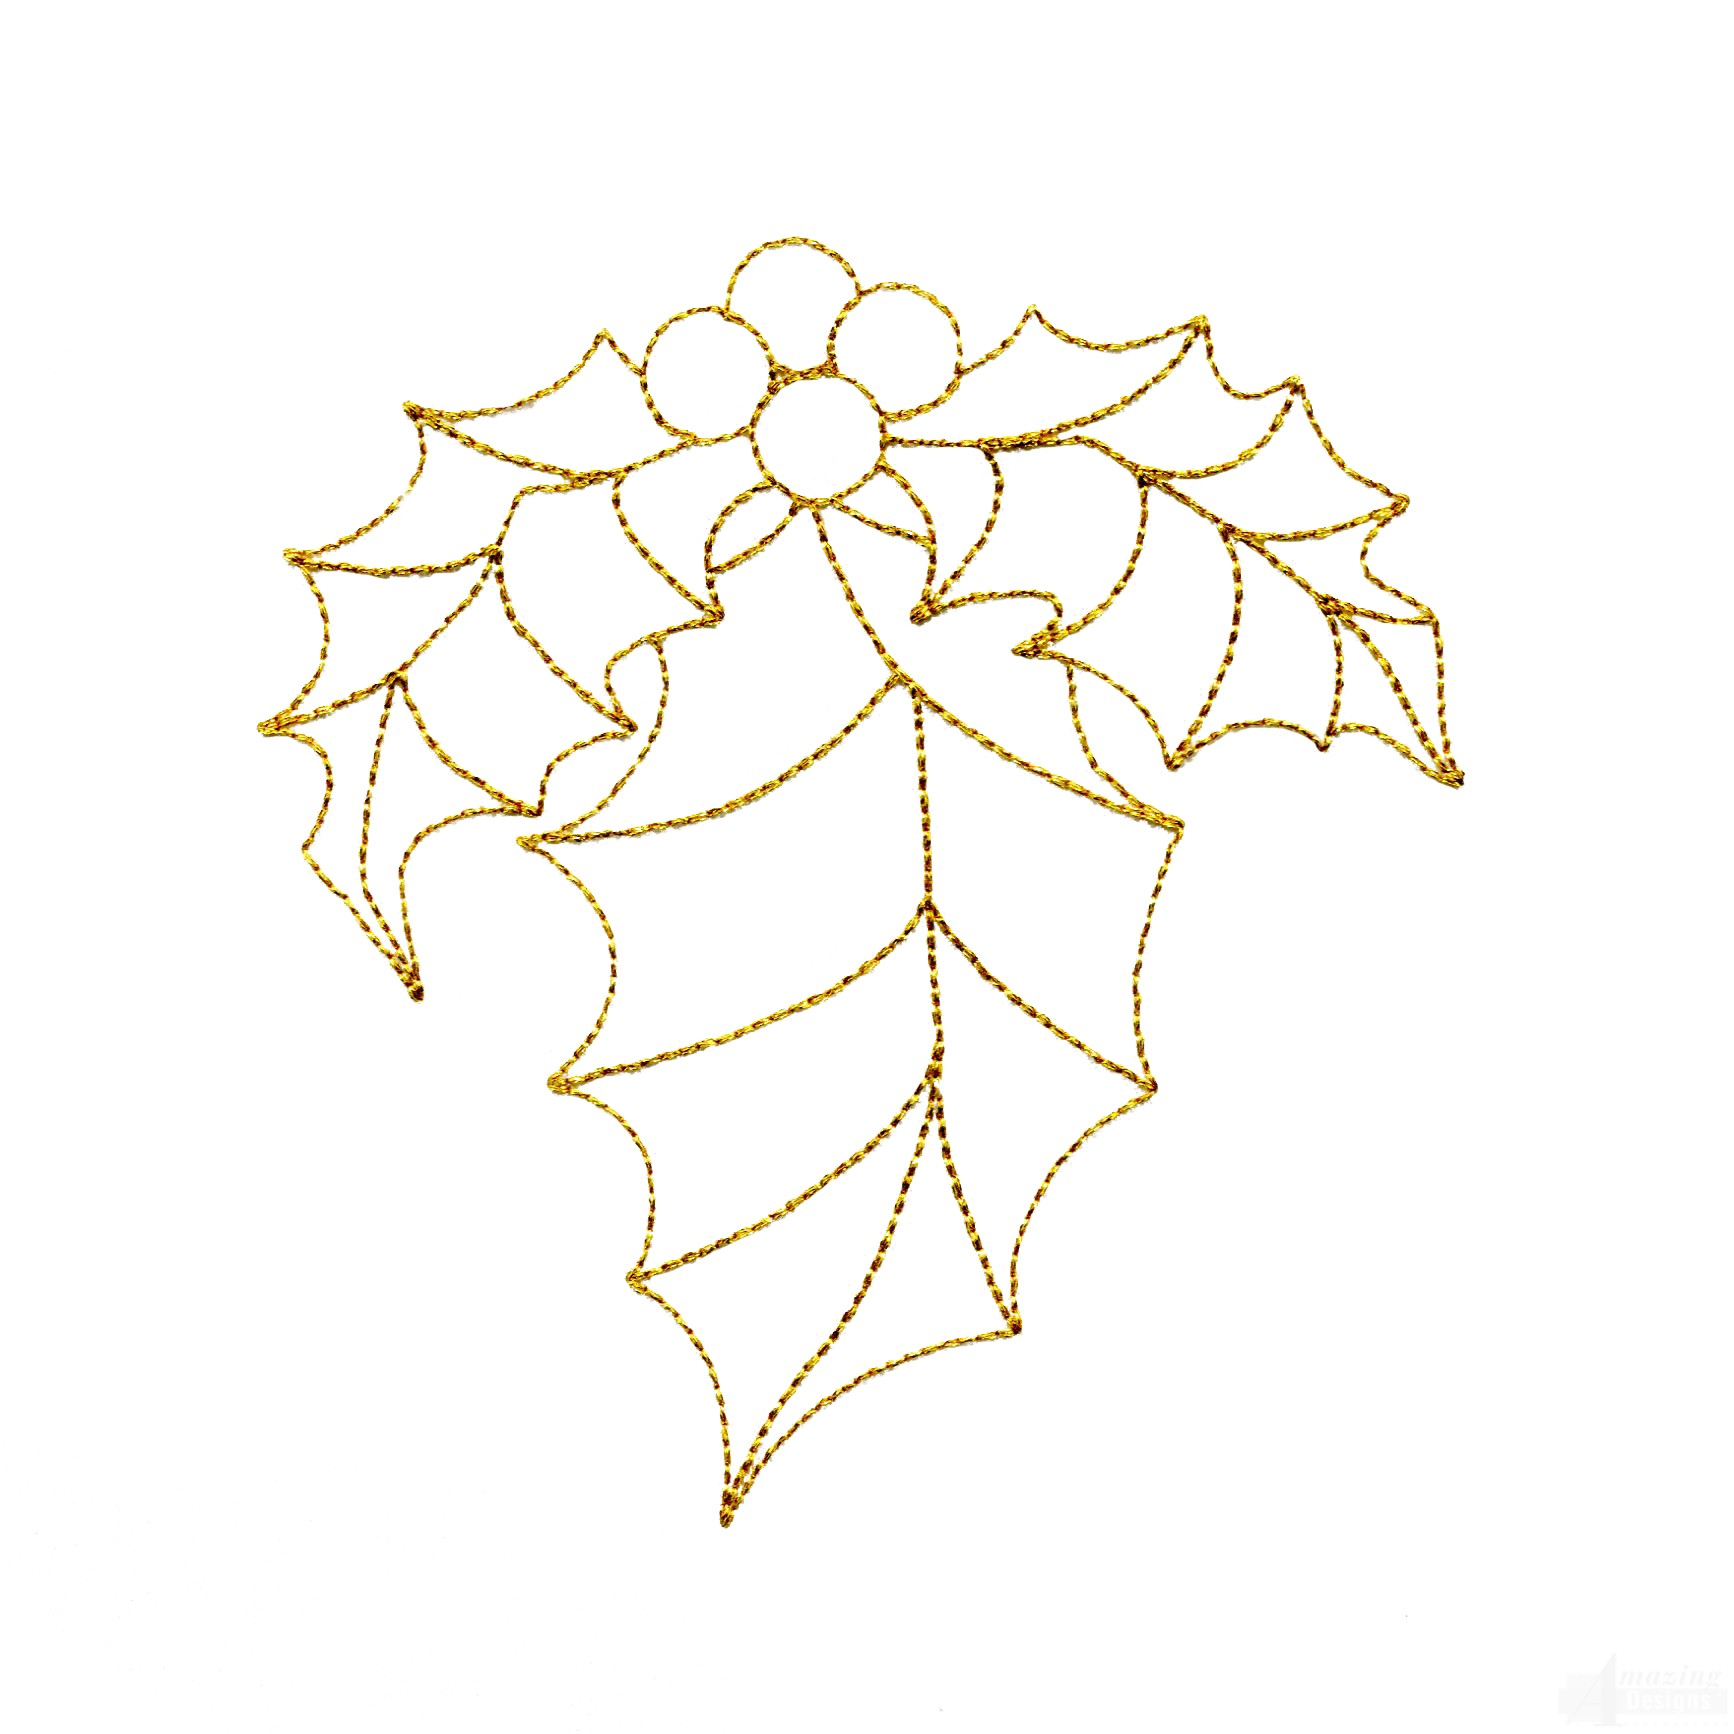 Line Work Design : Linework holly embroidery design